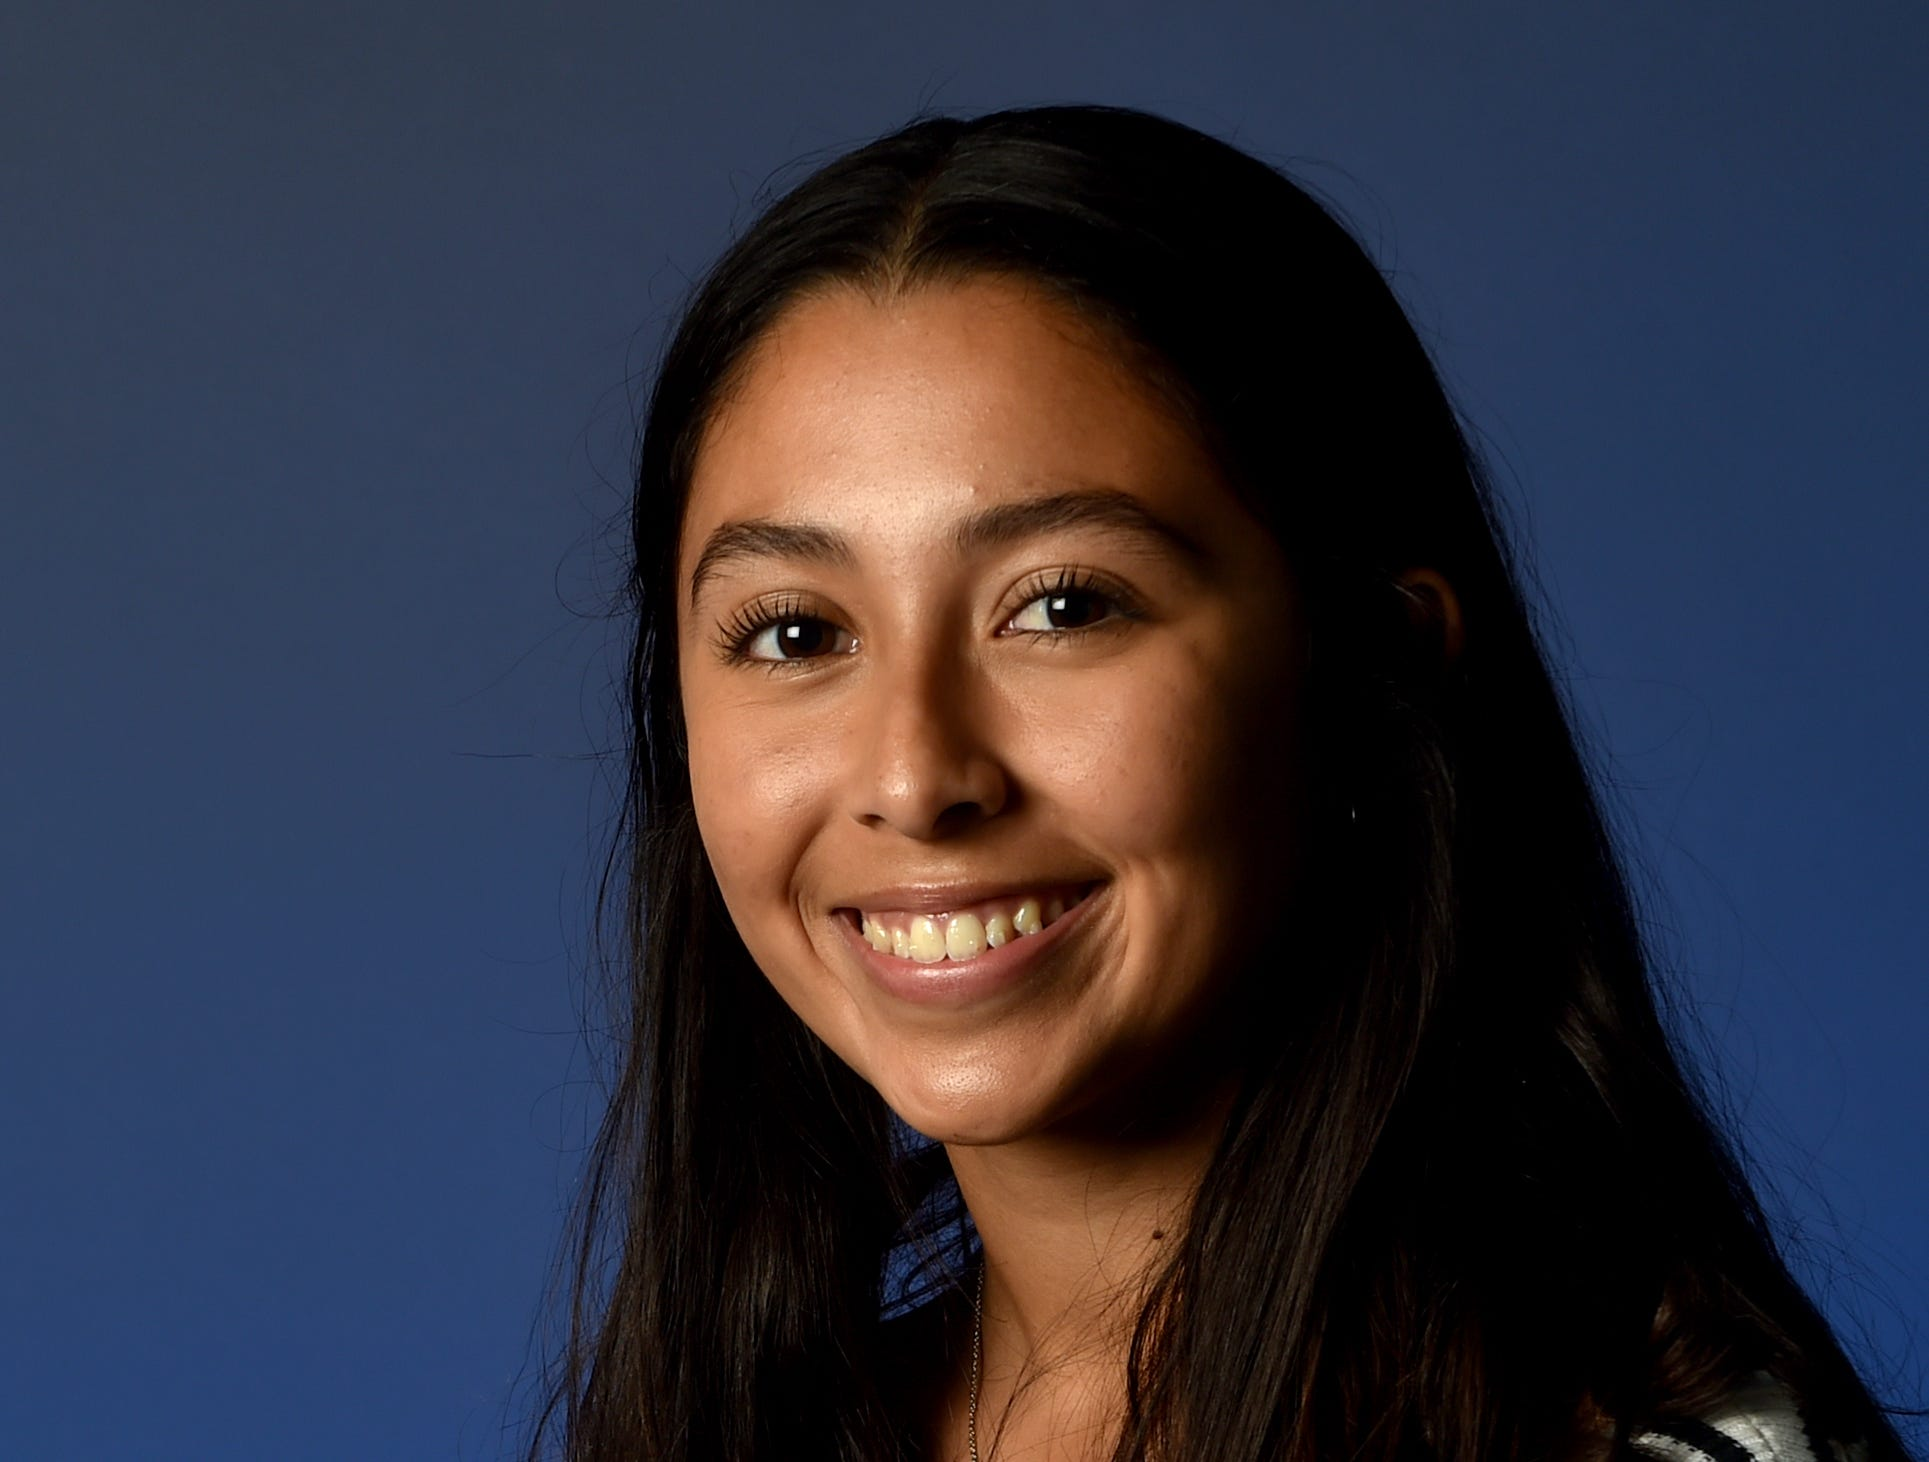 "CITLALI ZAMBRANO, Oxnard: The 5-foot-4 central defender has been the ever-present on the backline for three seasons. She led the young Yellowjackets to a 16-win season. The first-team All-Pacific View selection had one goal and three assists. Zambrano is an honor roll student who was elected ASB Vice President and served as varsity club president and homecoming queen. She plays club for Oxnard Wave and plans to attend either San Diego State or San Francisco State. She enjoys painting, watching ""Vampire Diaries,"" eating streak and potatoes and listening to Frank Ocean. ""The Great Gatsby"" is her favorite movie. She roots for FC Barcelona and Julie Ertz is her favorite athlete."